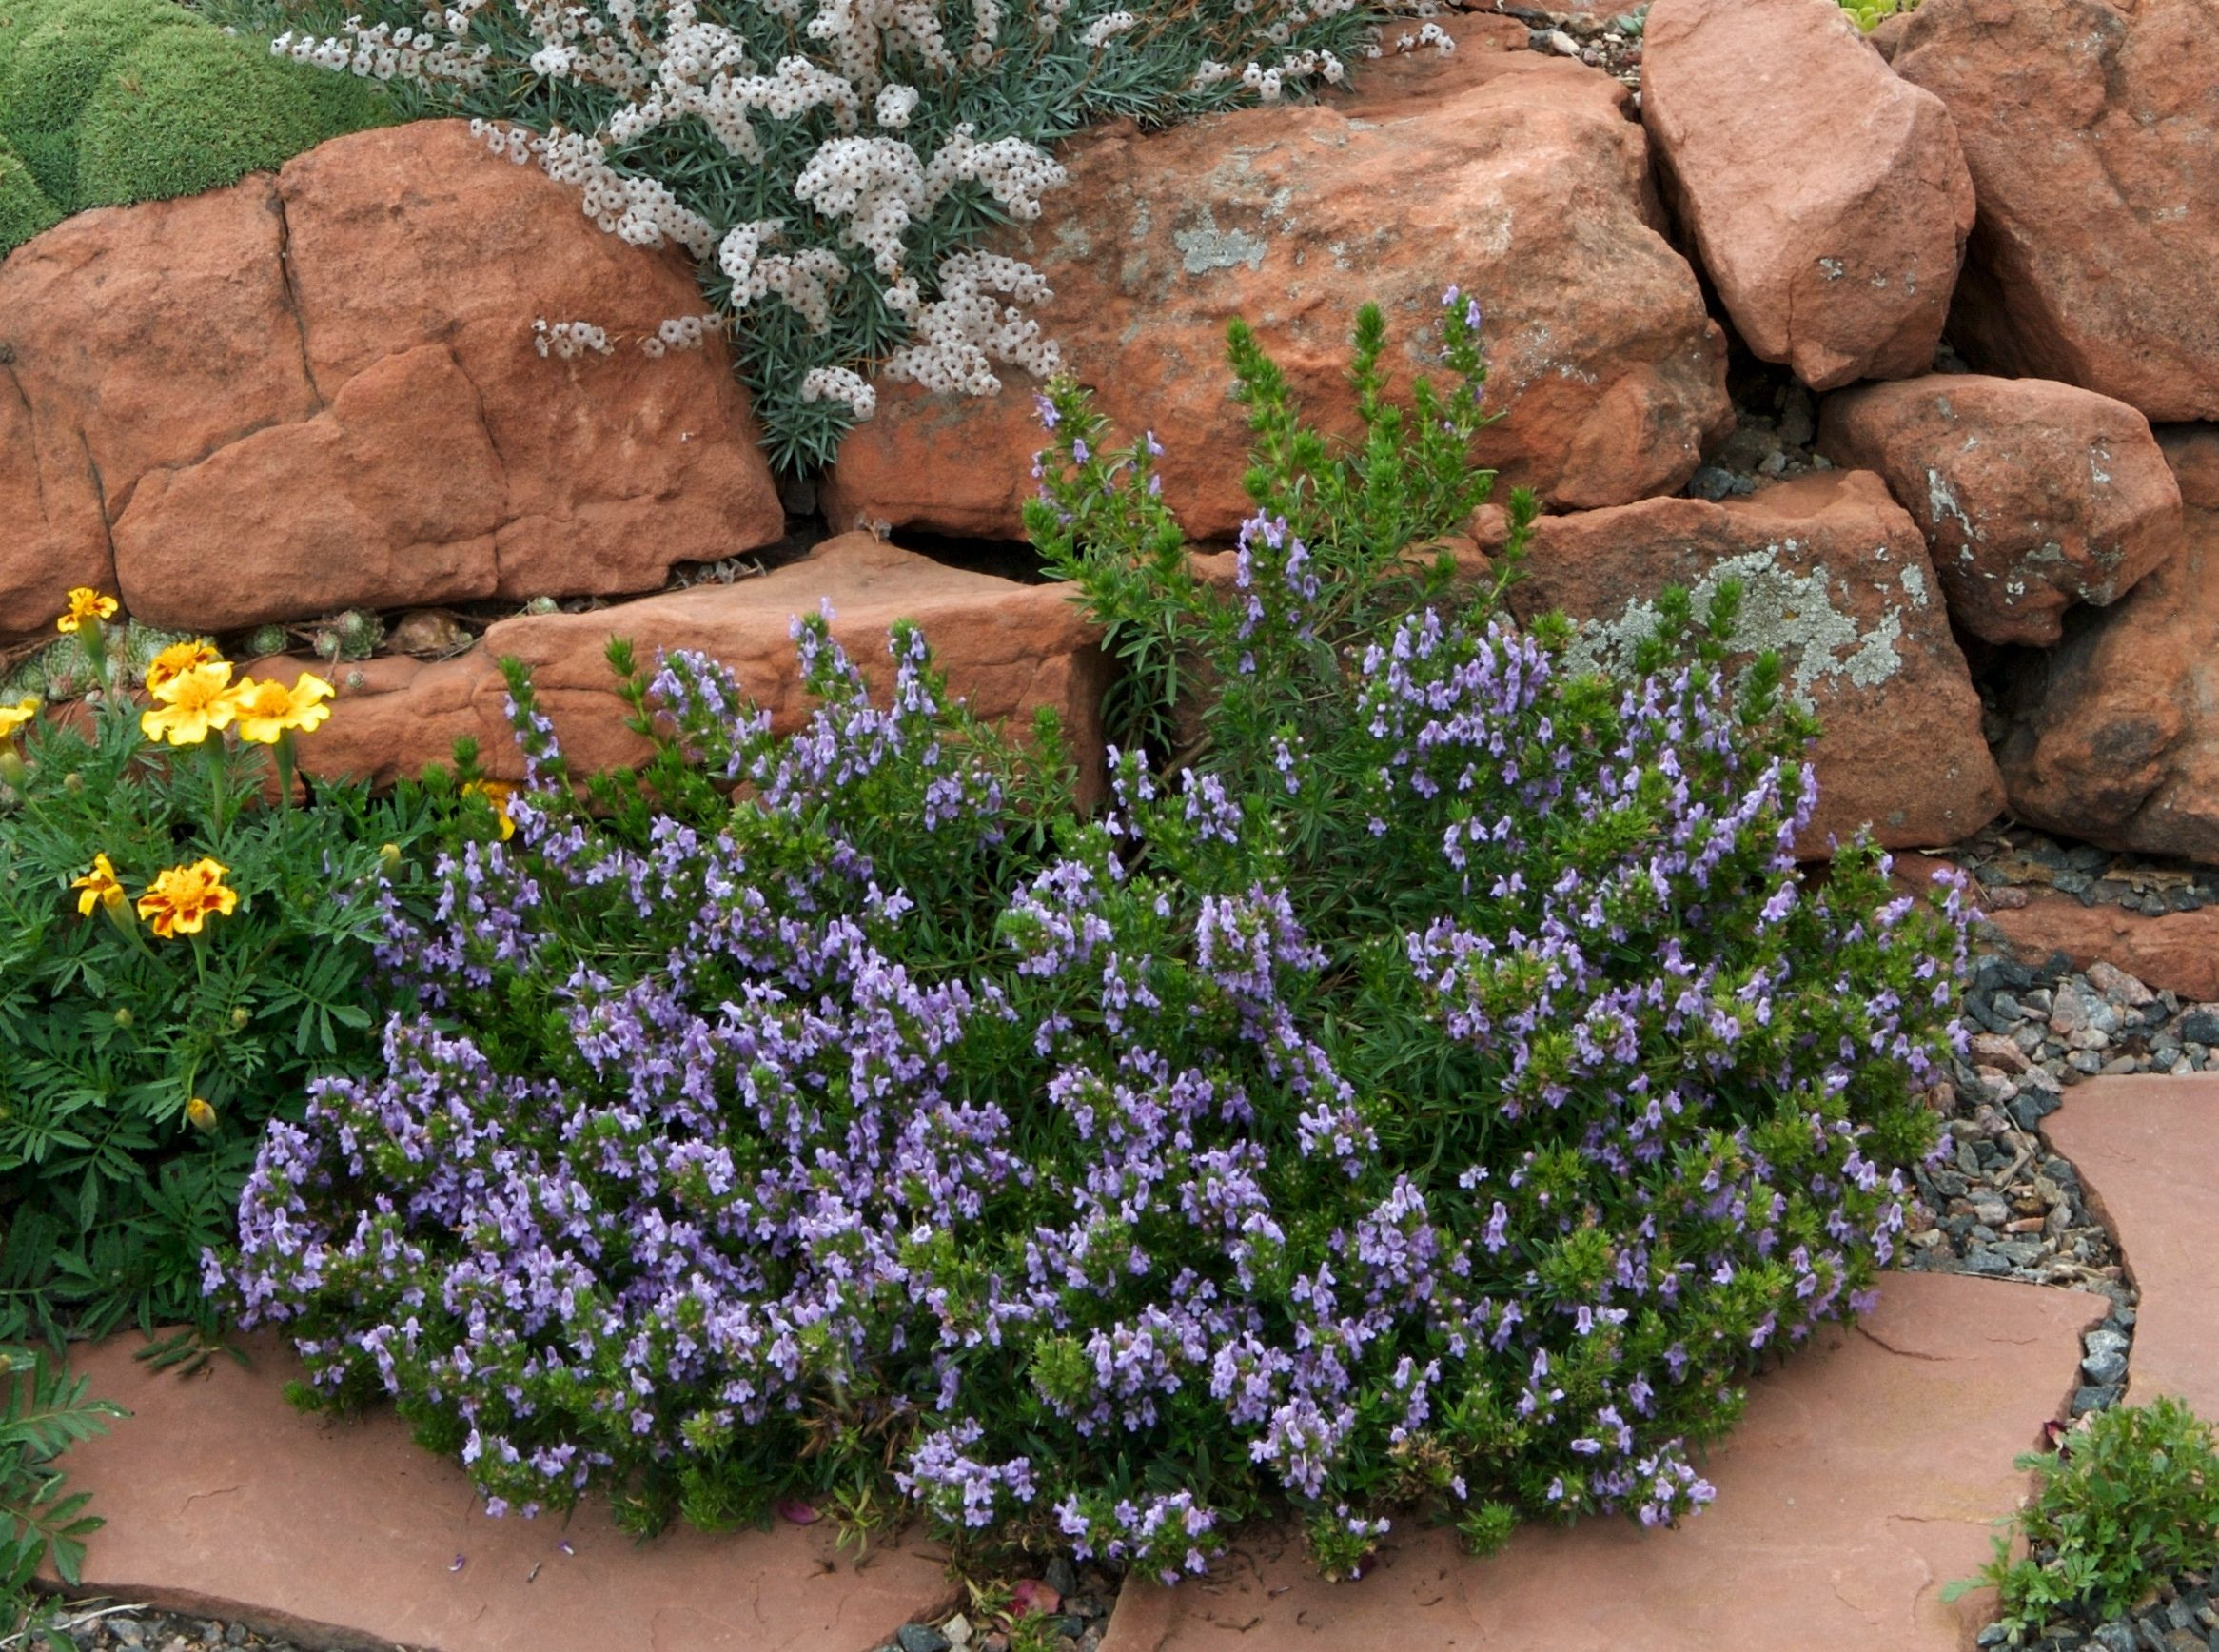 Purple winter savory Small mounding habit tolerates a variety of soils blooms late in the year August through November